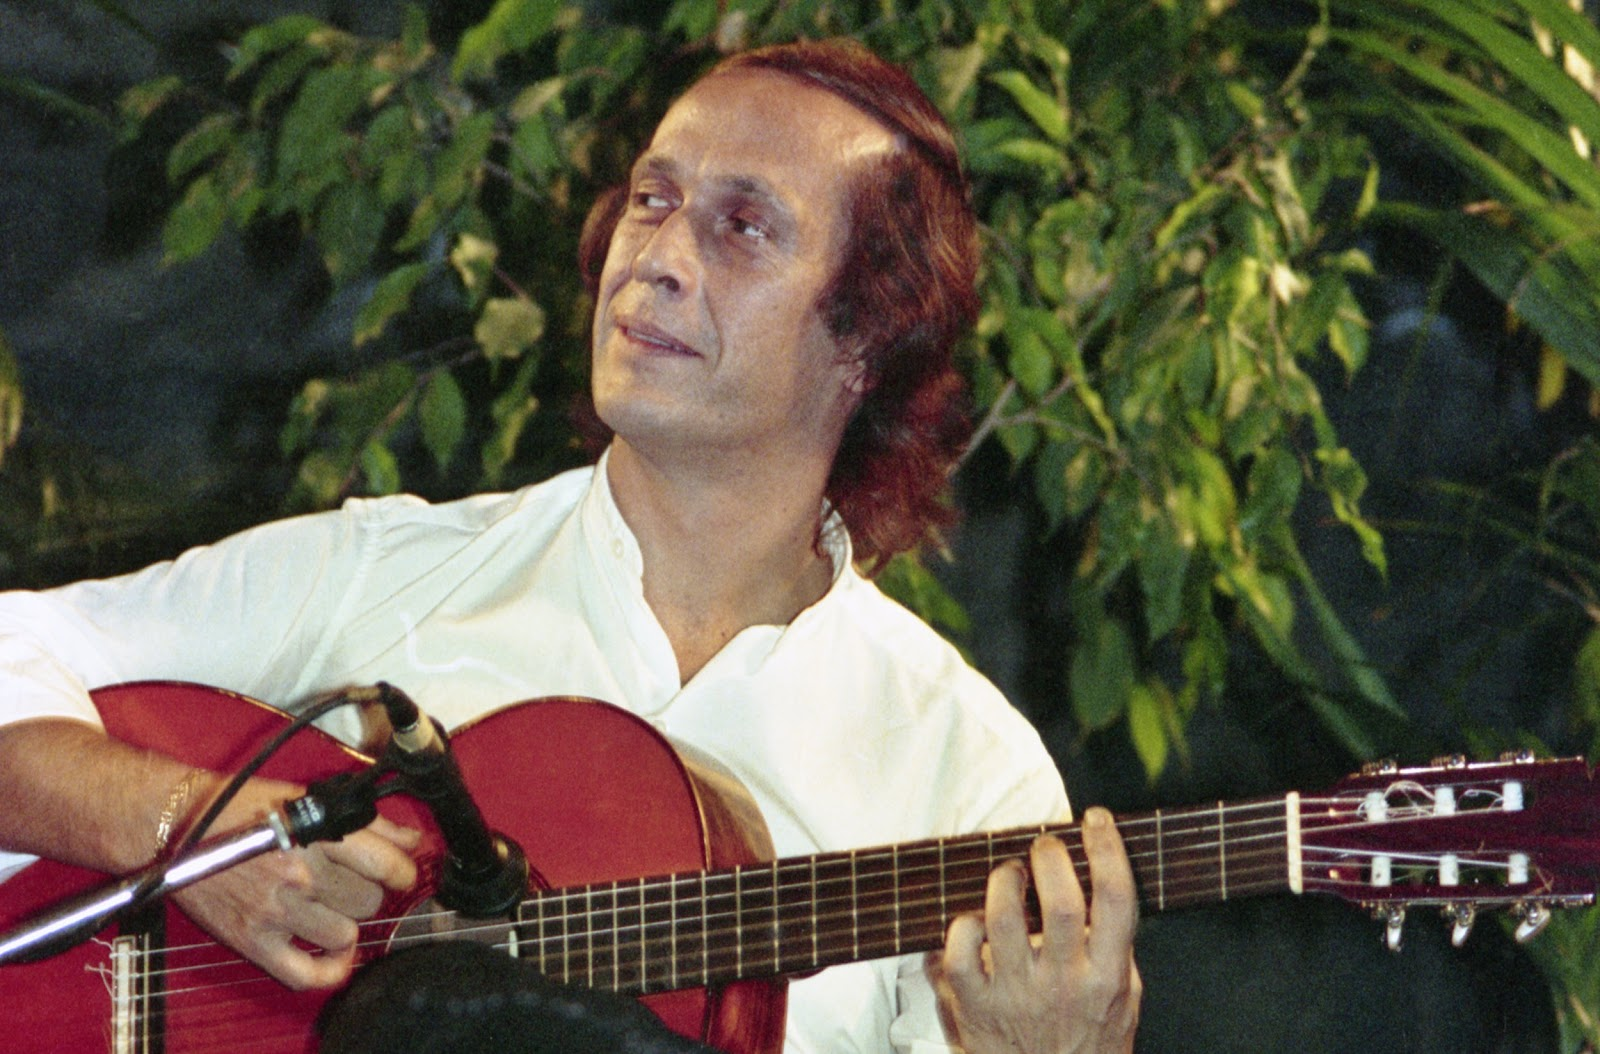 Music is a big part of the Spanish lifestyle. This picture shows renowned flamenco guitarist Paco de Lucia.